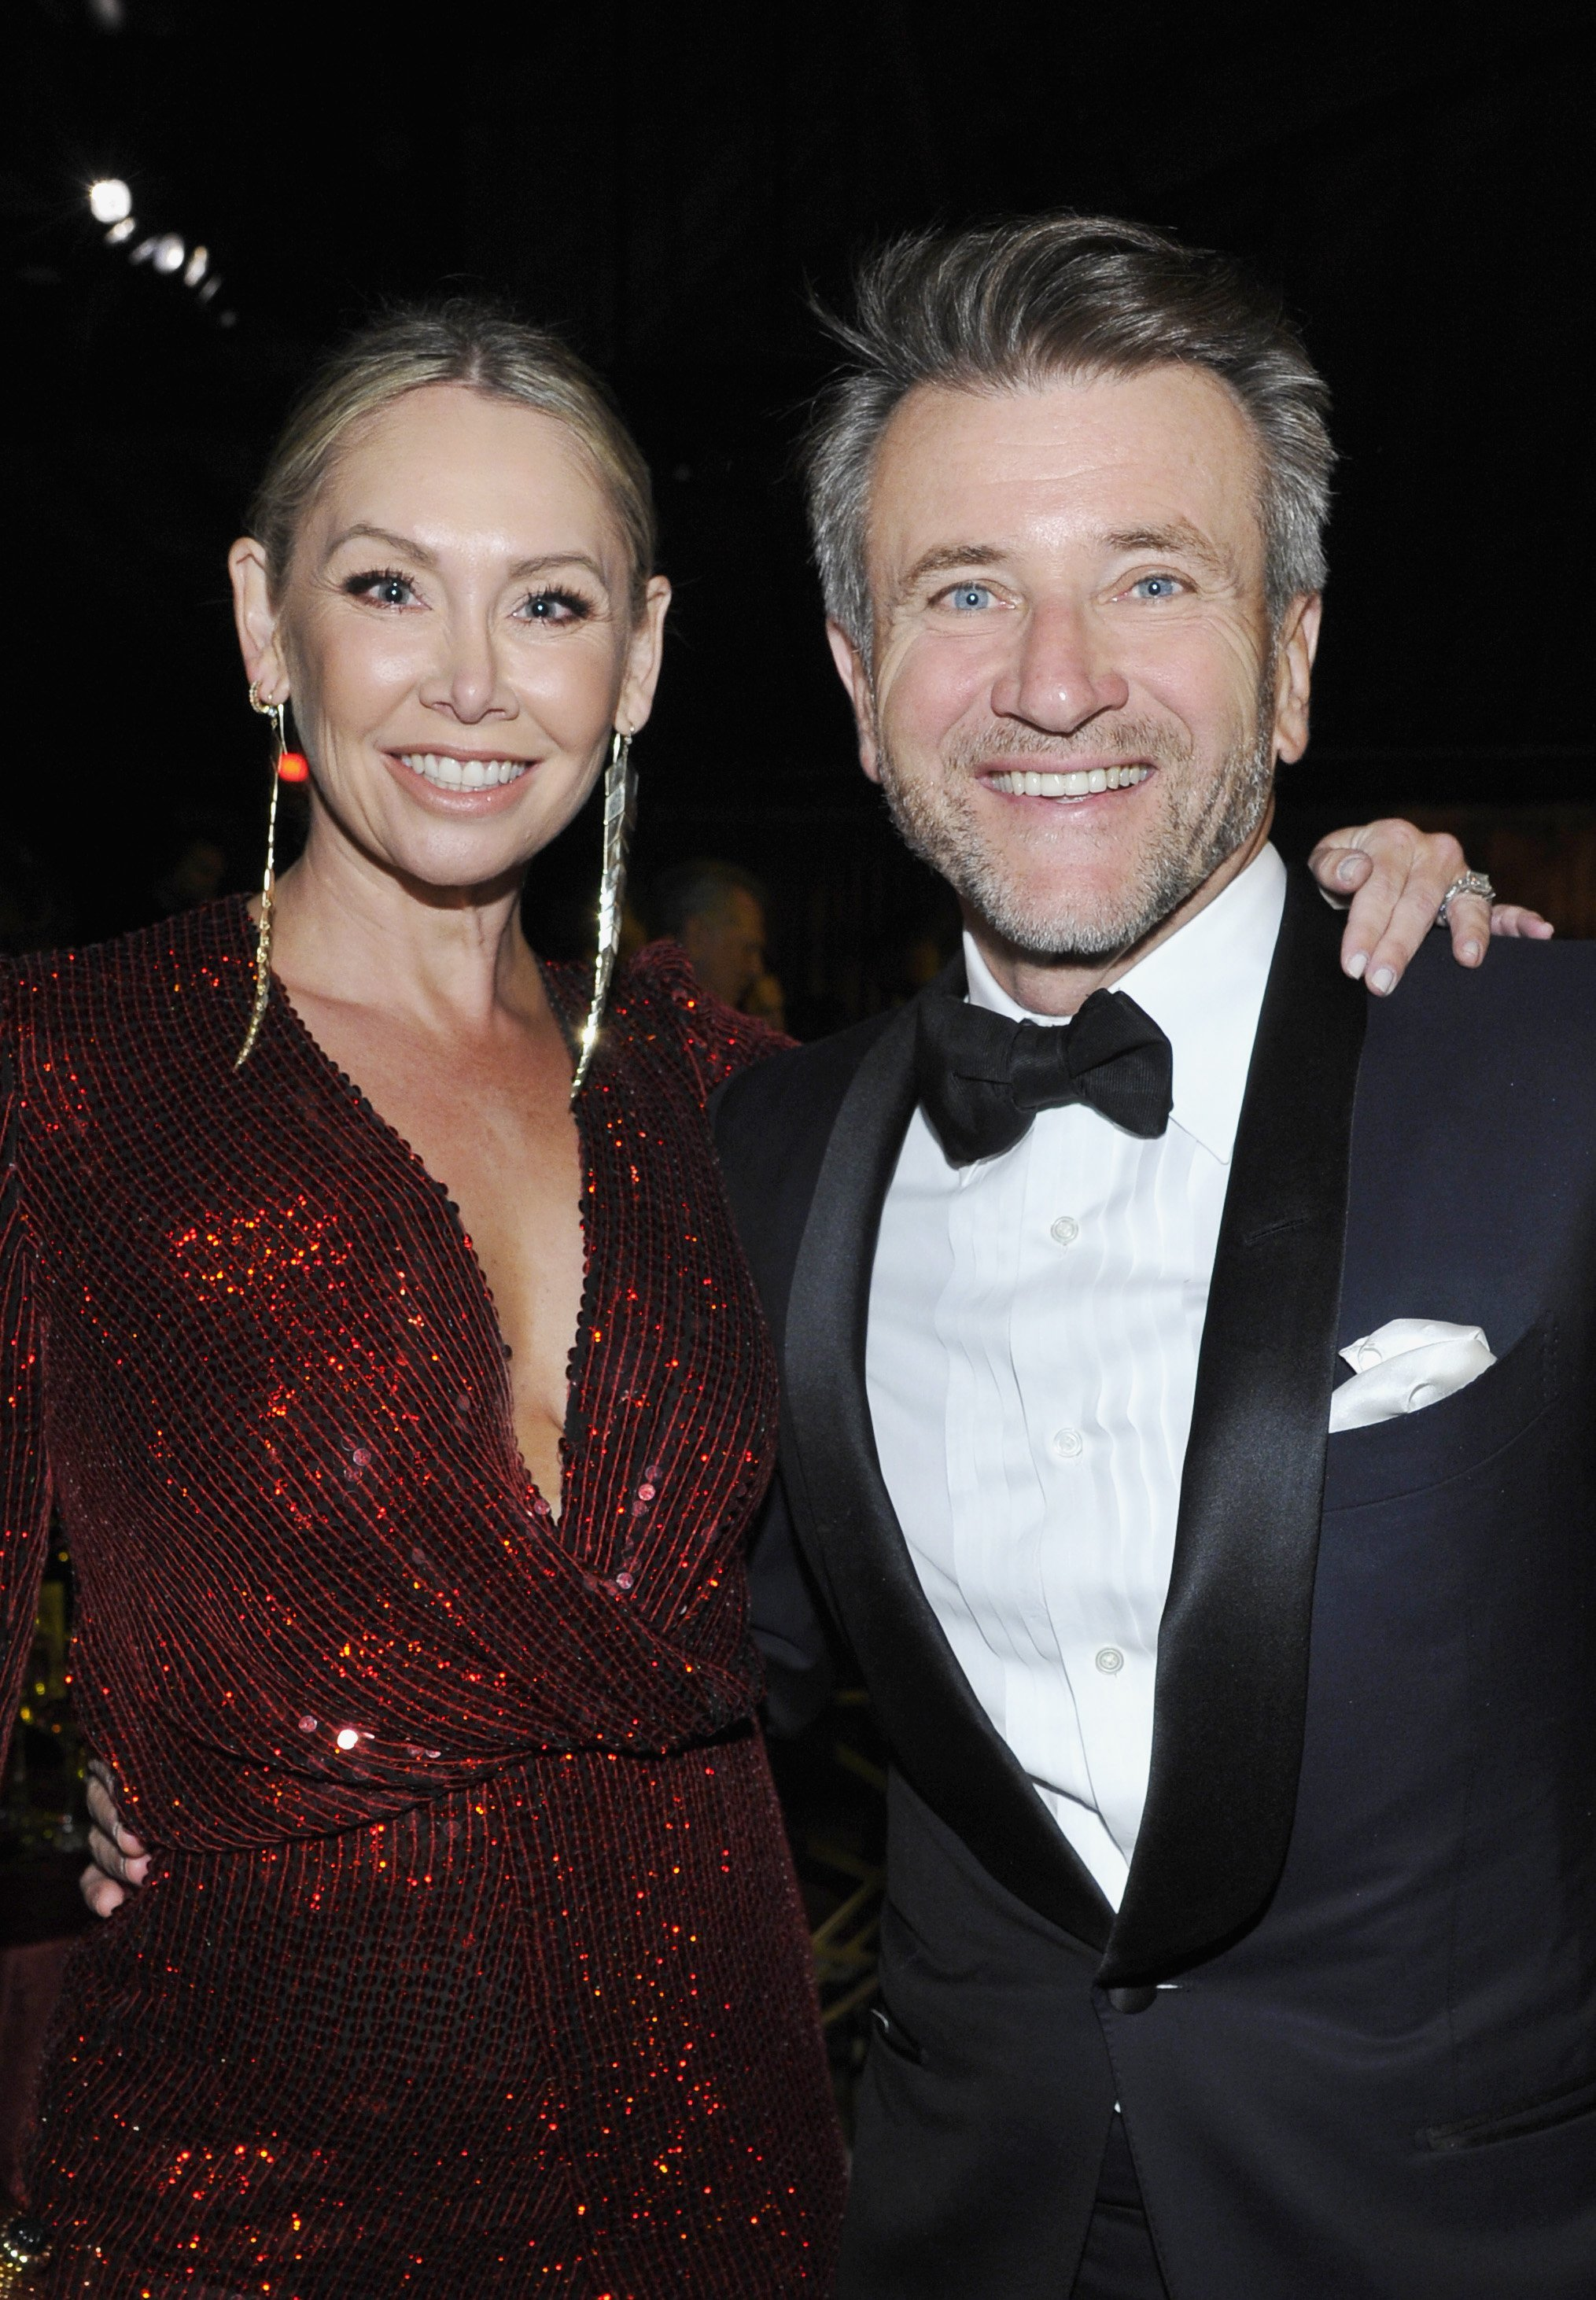 Kym Herjavec and Robert Herjavec attend the G'Day USA Gala in Culver City, California on January 26, 2019 | Photo: Getty Images